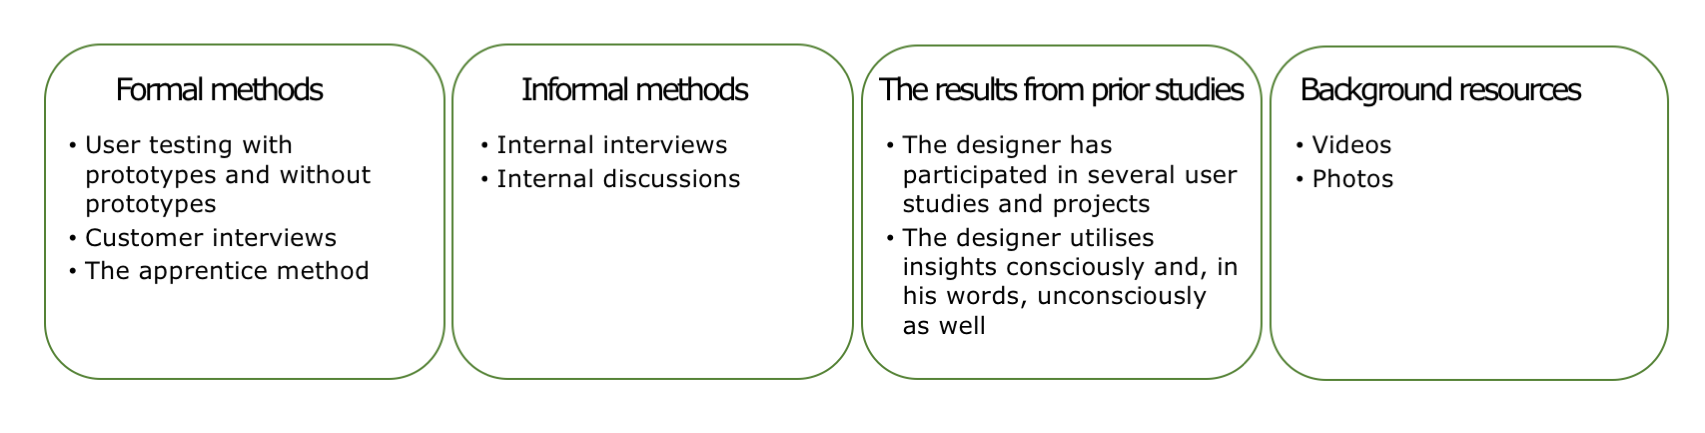 The method mix includes typical designer methods and the apprentice method.